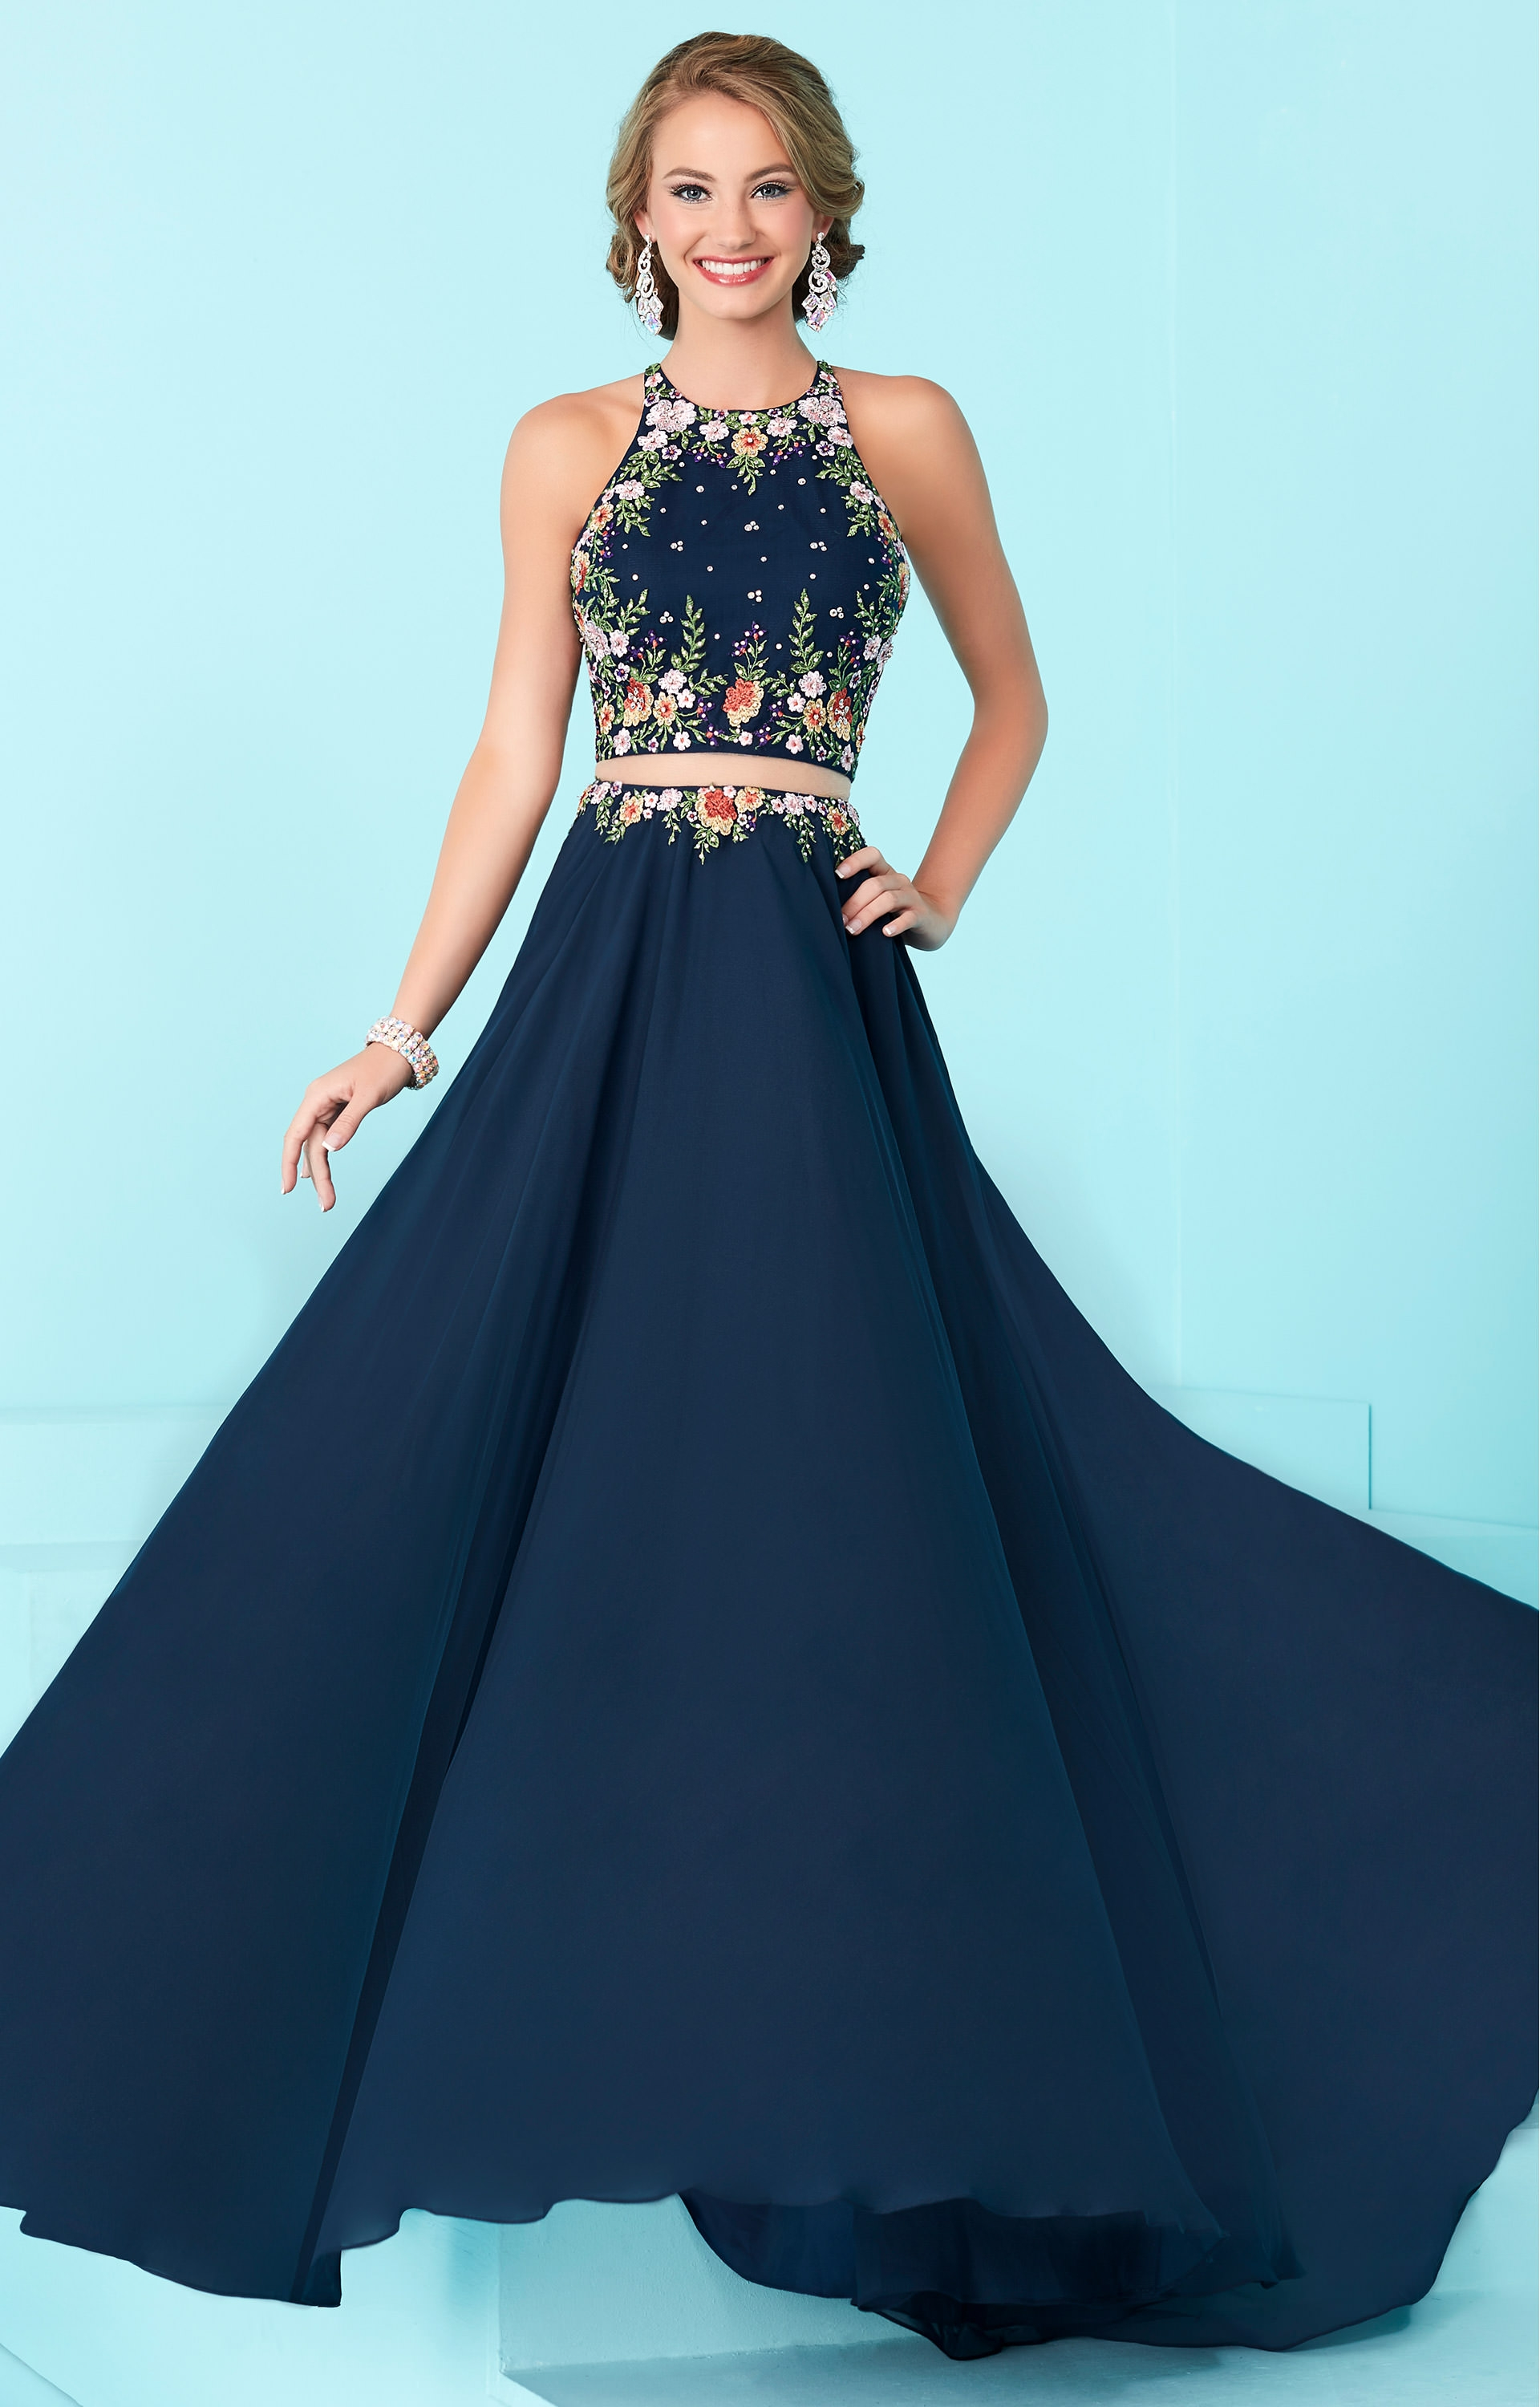 Tiffany Designs 16206  2 Piece Dress with Open Back Prom